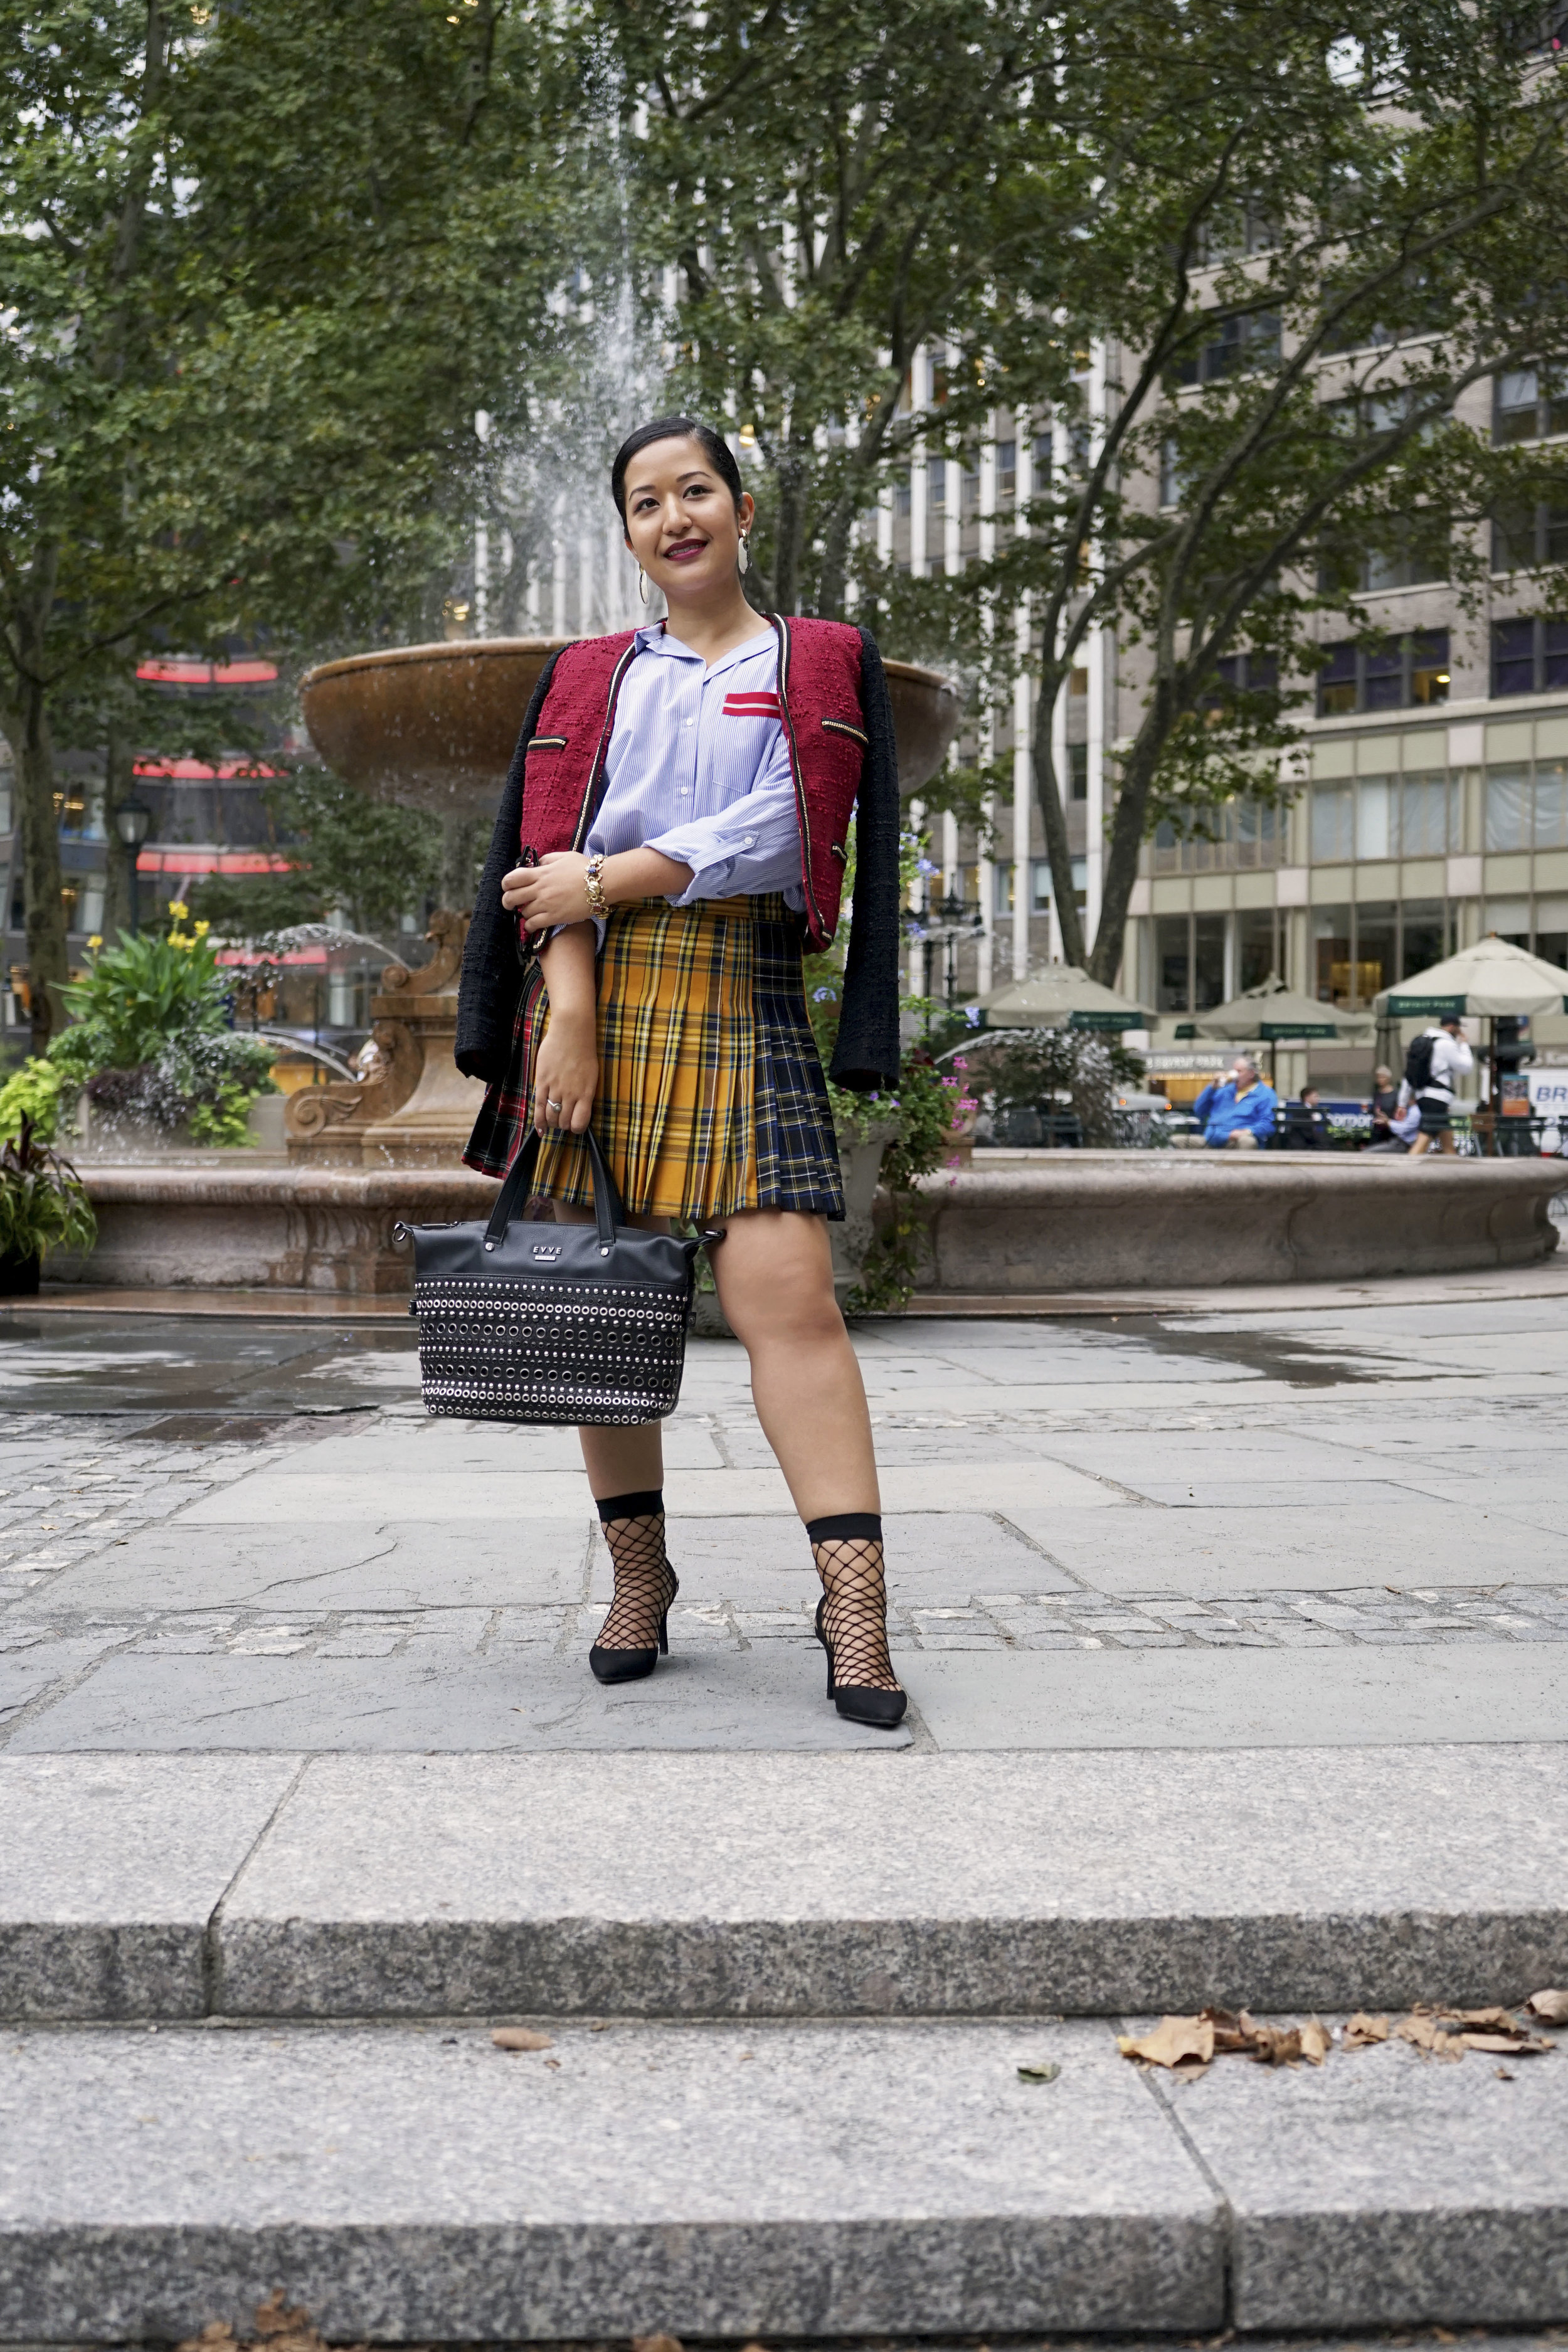 Krity S x Fall Trends x Preppy Plaid 6.jpg